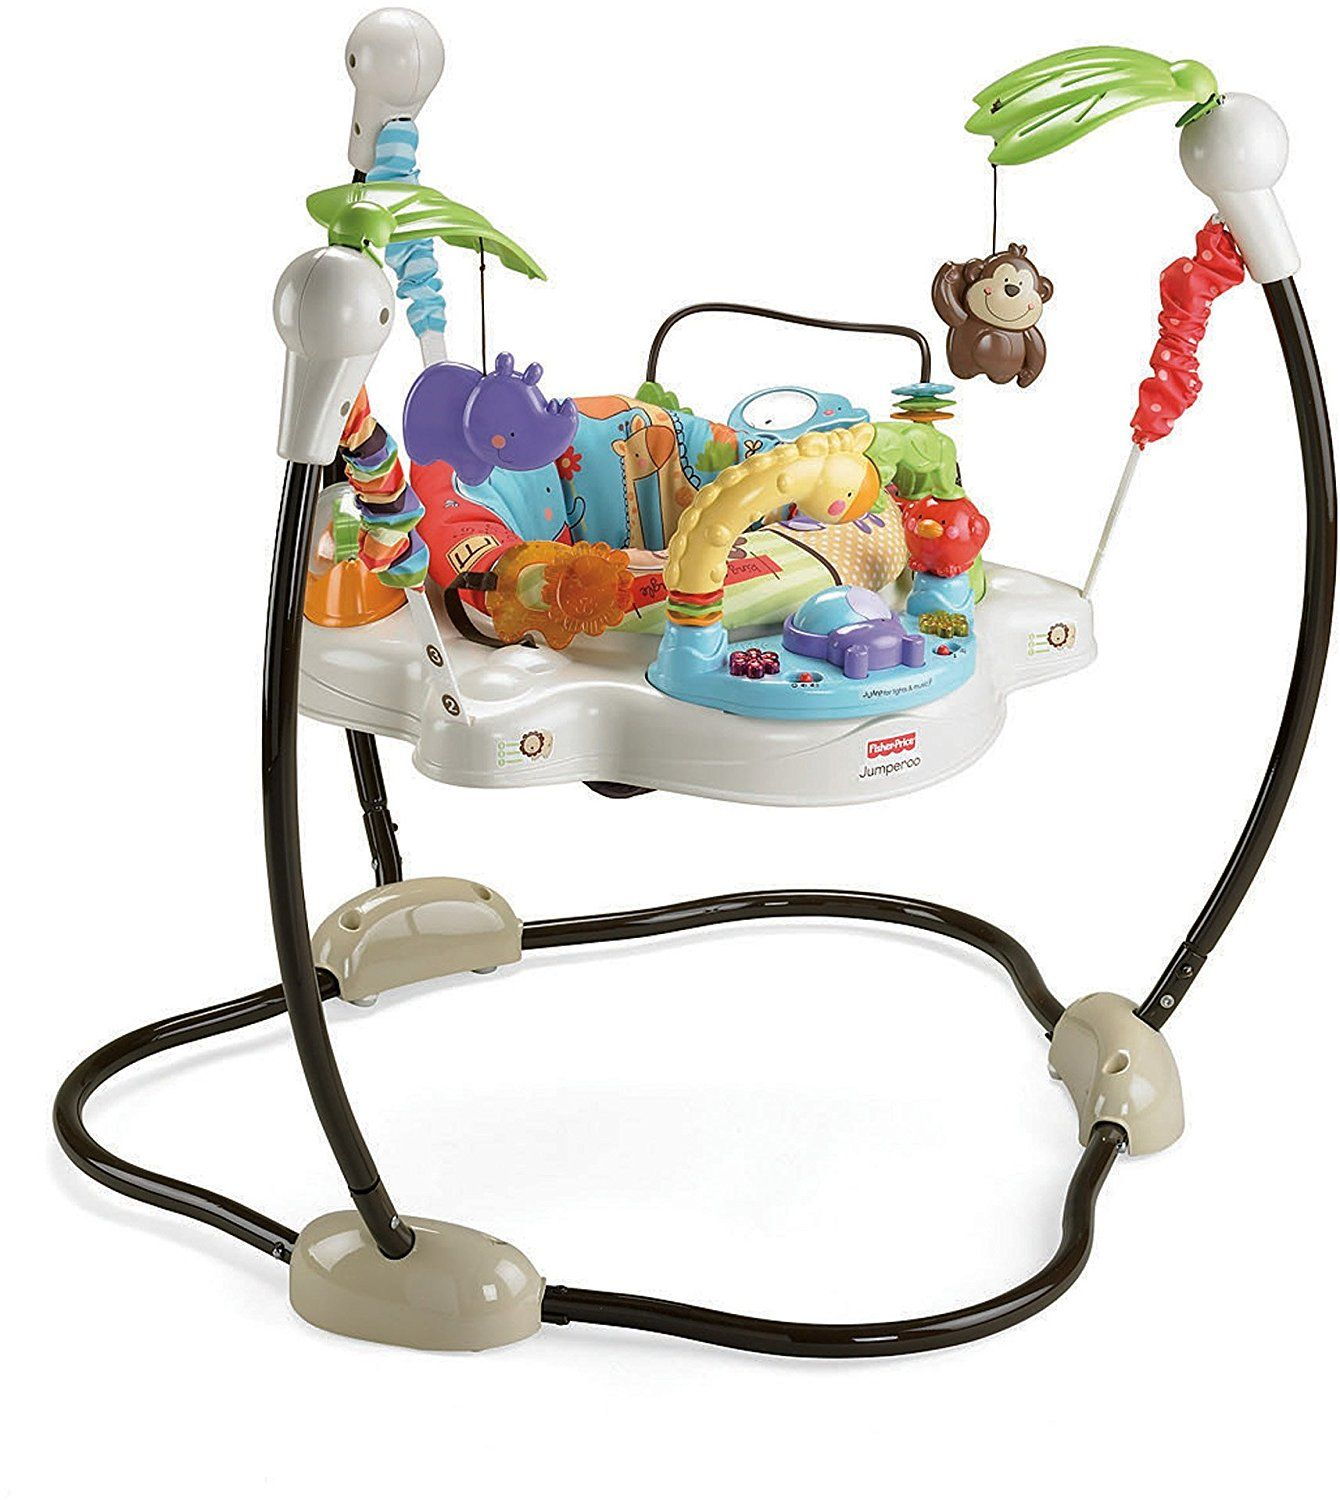 eaad8ccc2 Do you want to read reviews on the Fisher Price Luv U Zoo Jumperoo ...